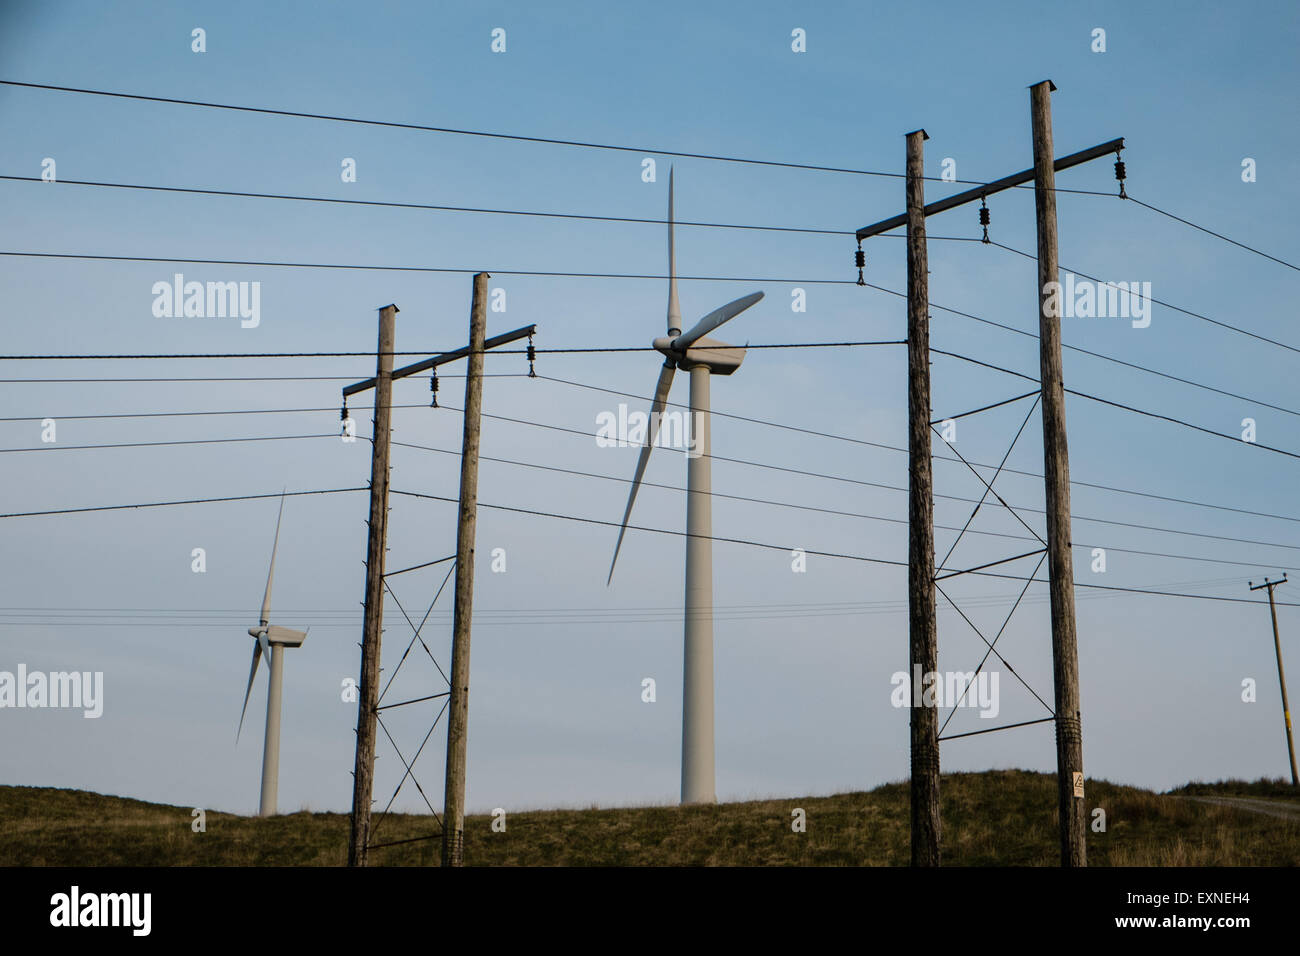 Energy Resources Wales Stock Photos Amp Energy Resources